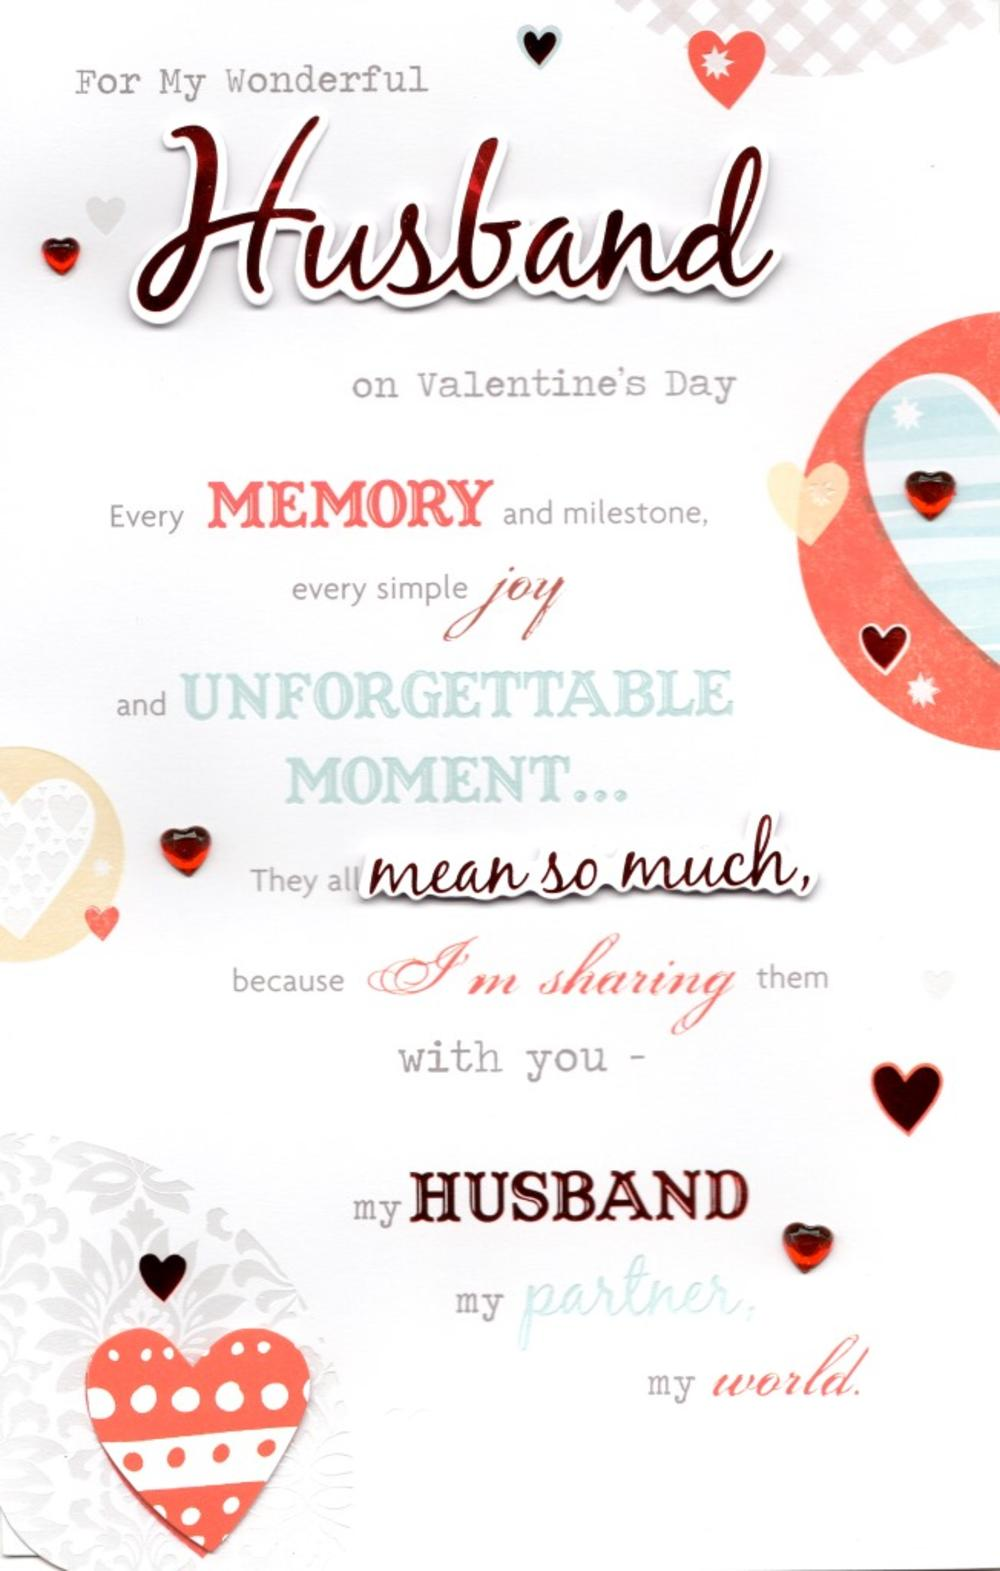 Husband valentine 39 s day greeting card cards love kates for What to put on a valentines card